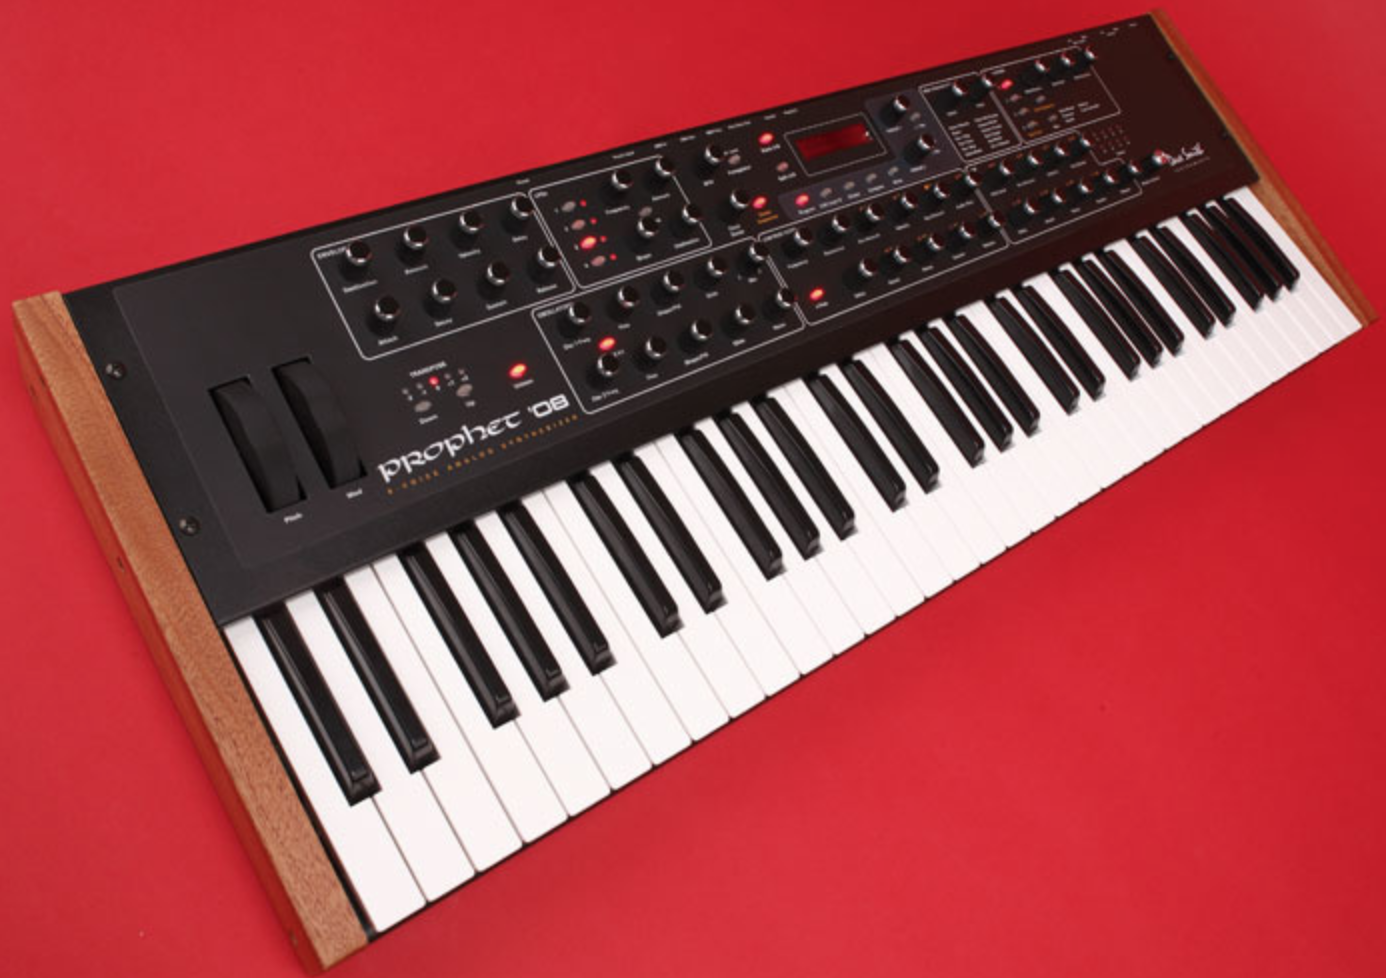 carriers patience origins Now Is The Time For Loving Me, Yourself & Everyone Else prophet 8 synth